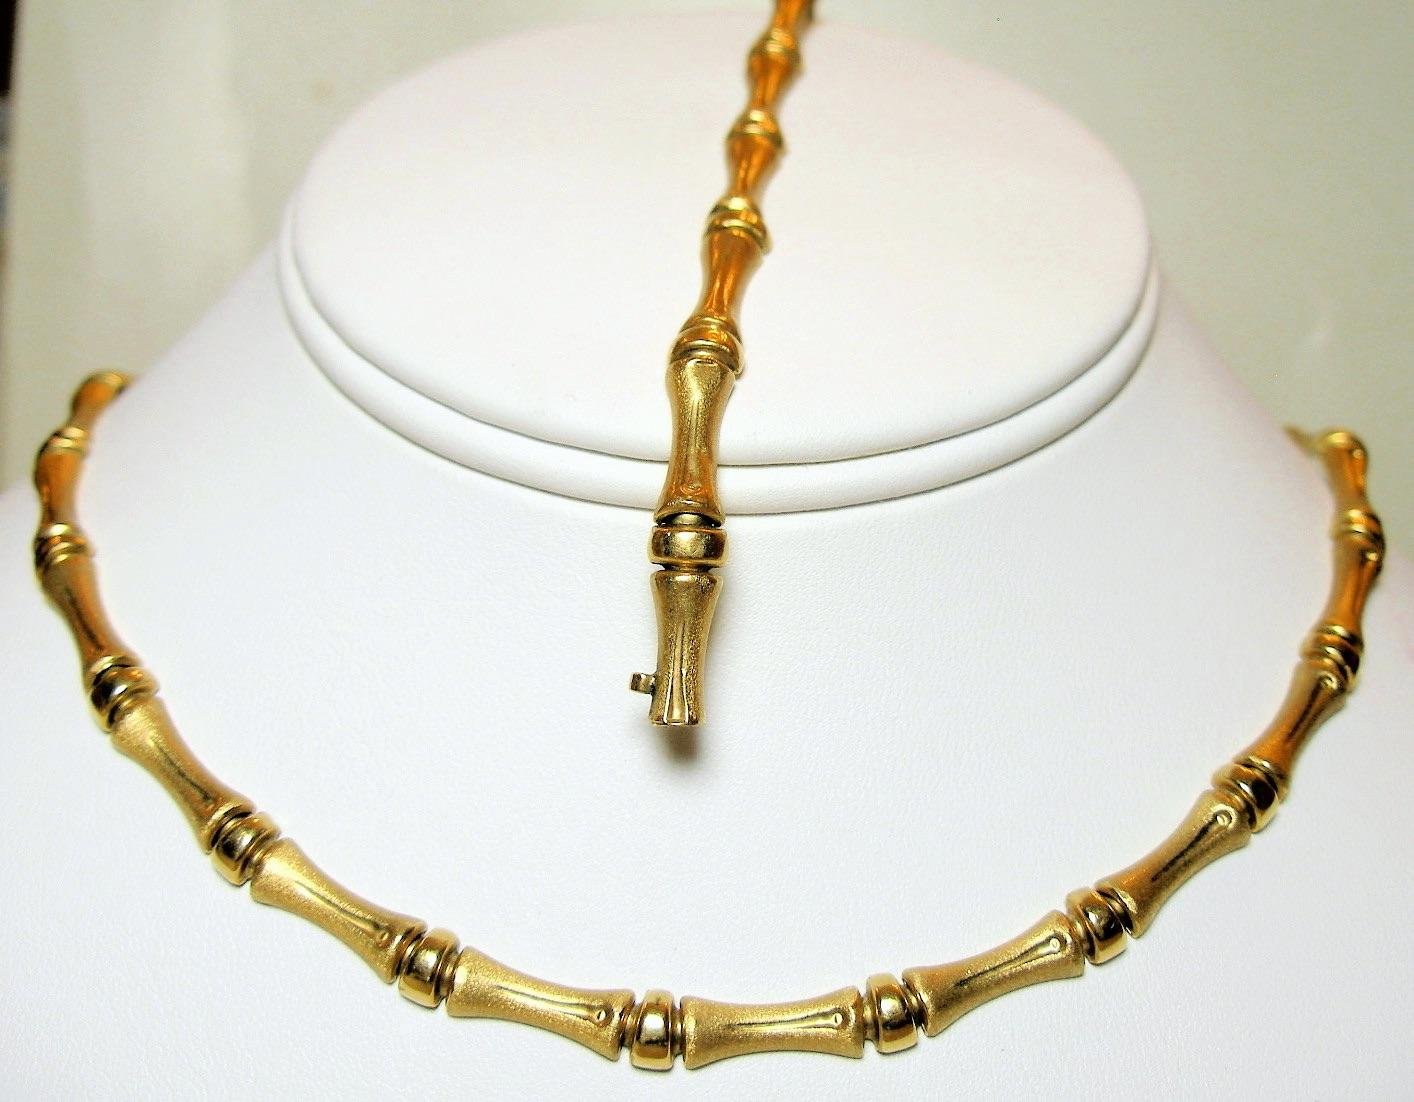 Wonderful bamboo design French 18K stamped solid gold jewelry set